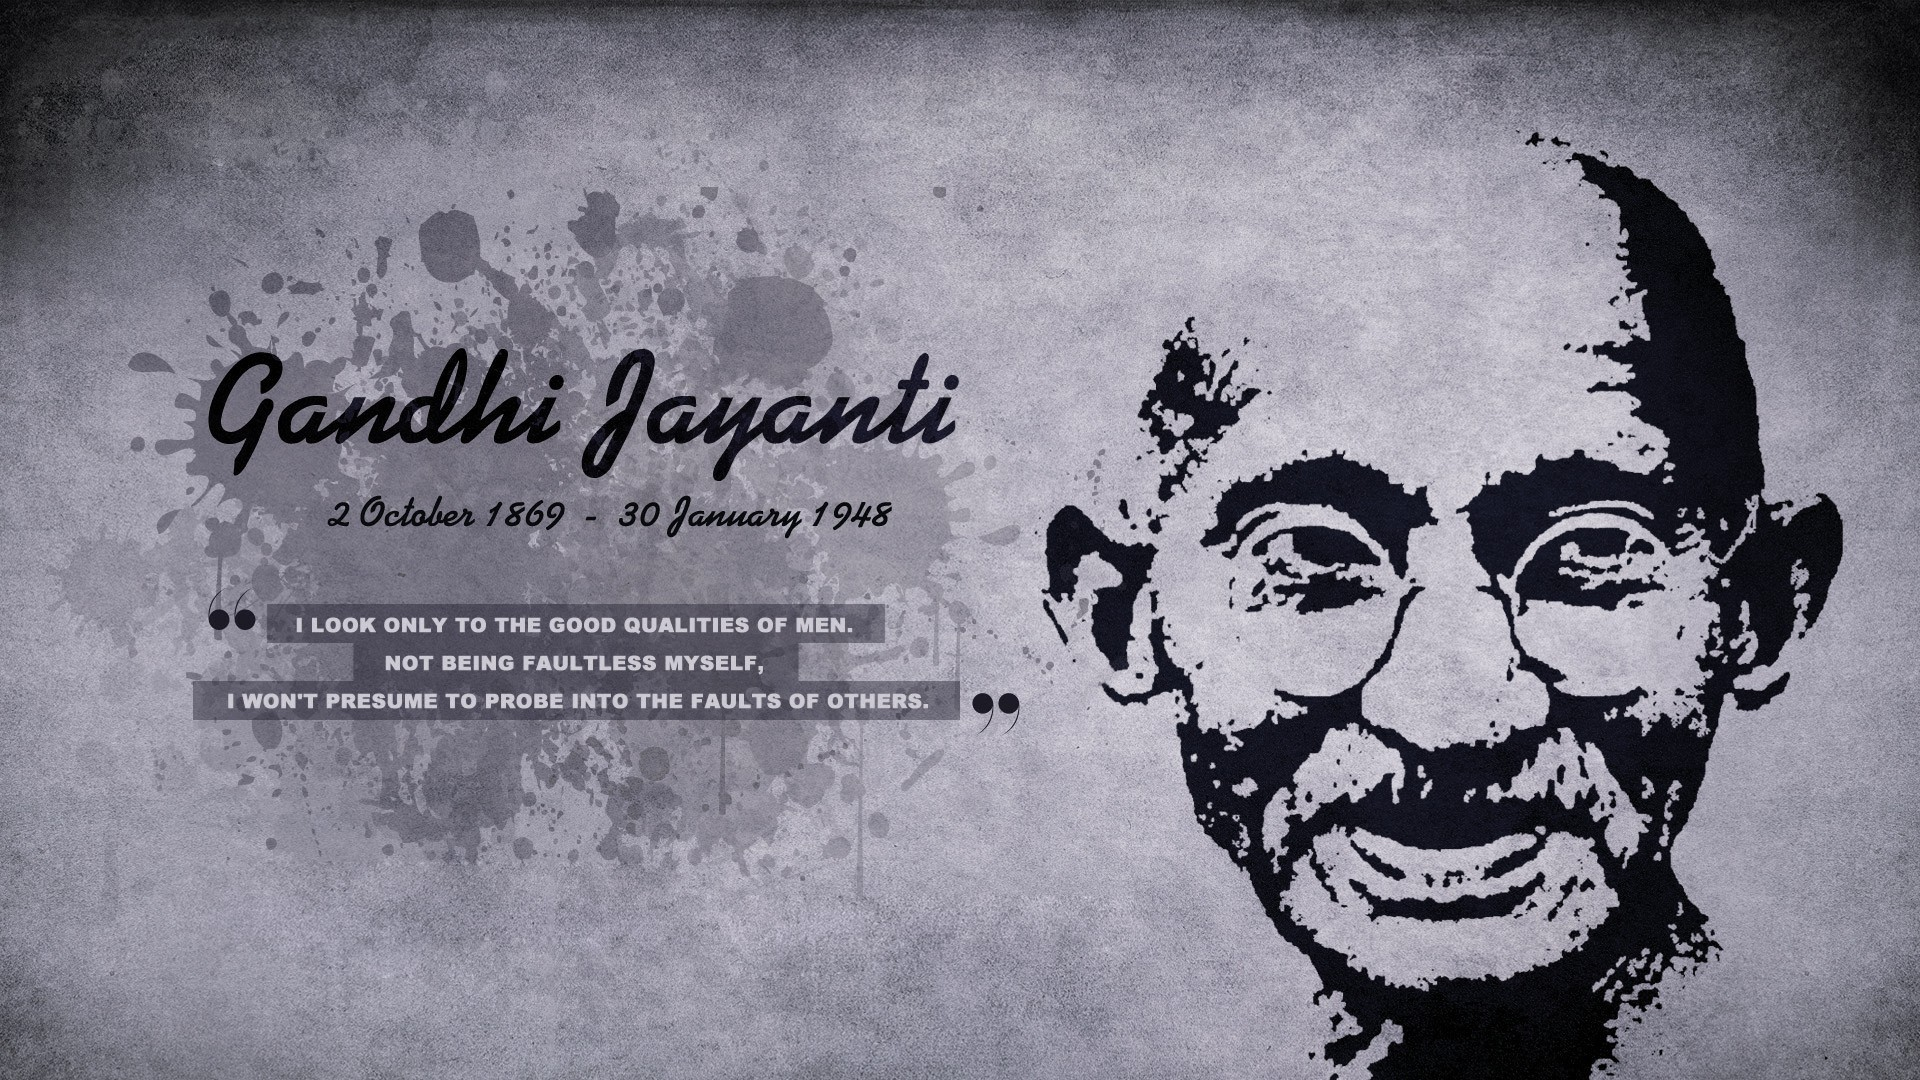 happy gandhi jayanti october 2nd quotes wallpaper